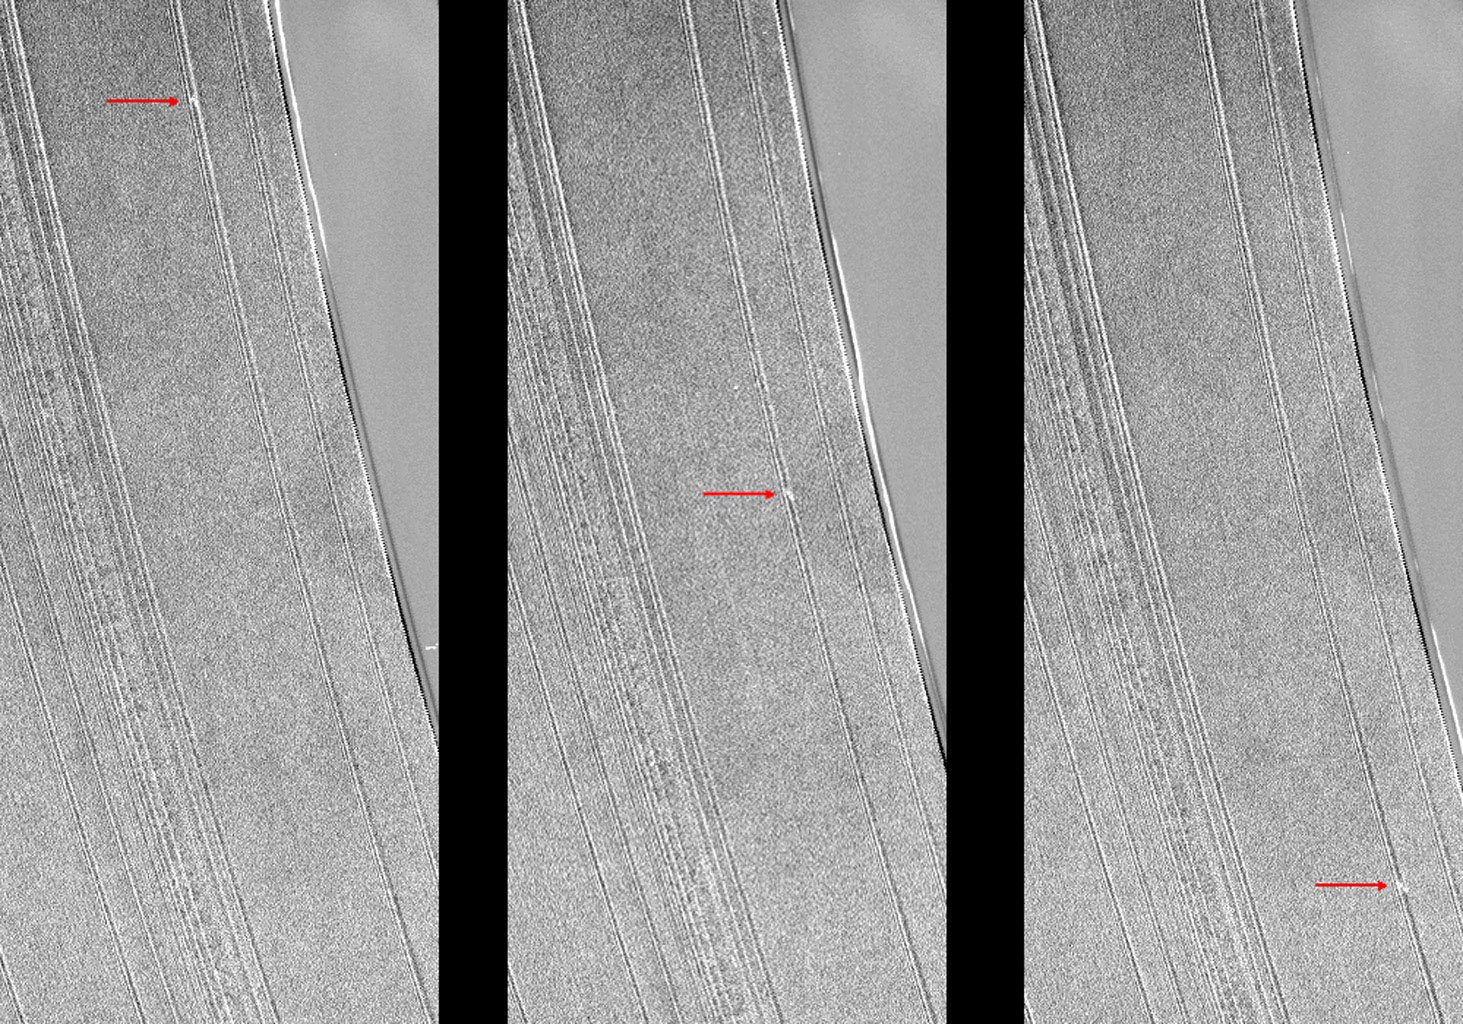 These three images from NASA's Cassini spacecraft show a propeller-shaped structure created by an unseen moon in Saturn's A ring.